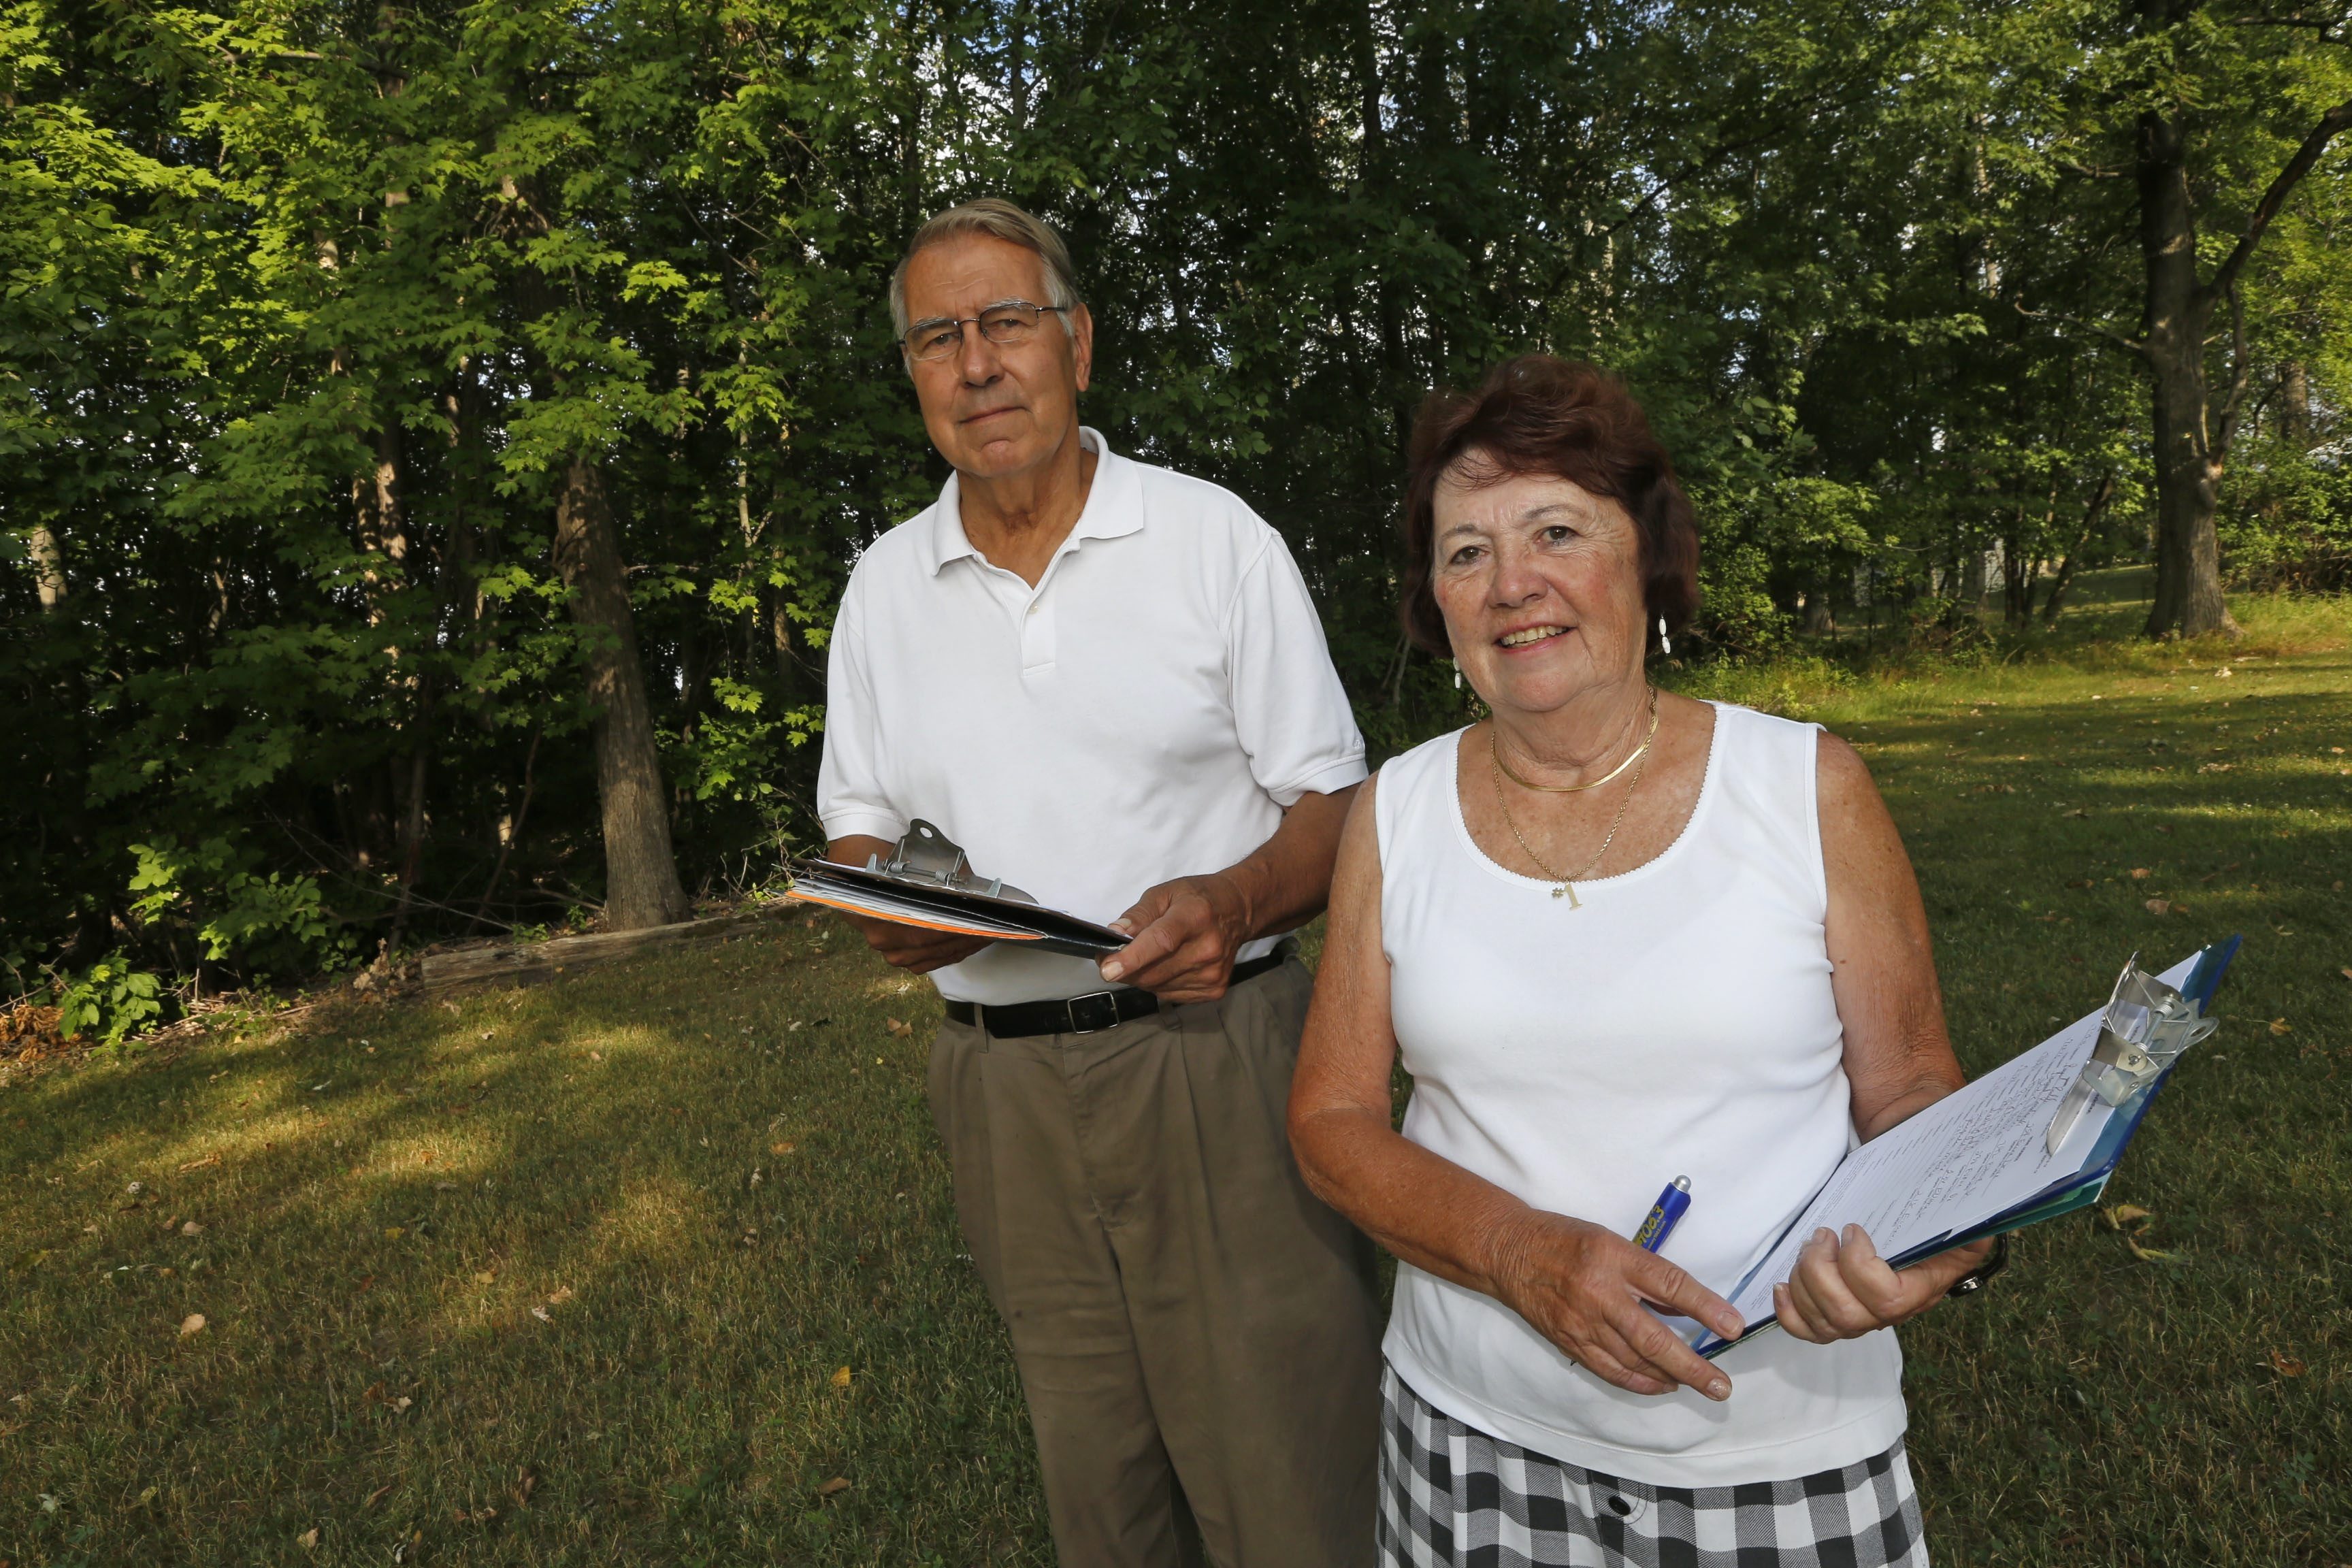 Joan Priebe and Irvine. G. Reinig II have been soliciting signatures toward a referendum to dissolve the Village of Depew.